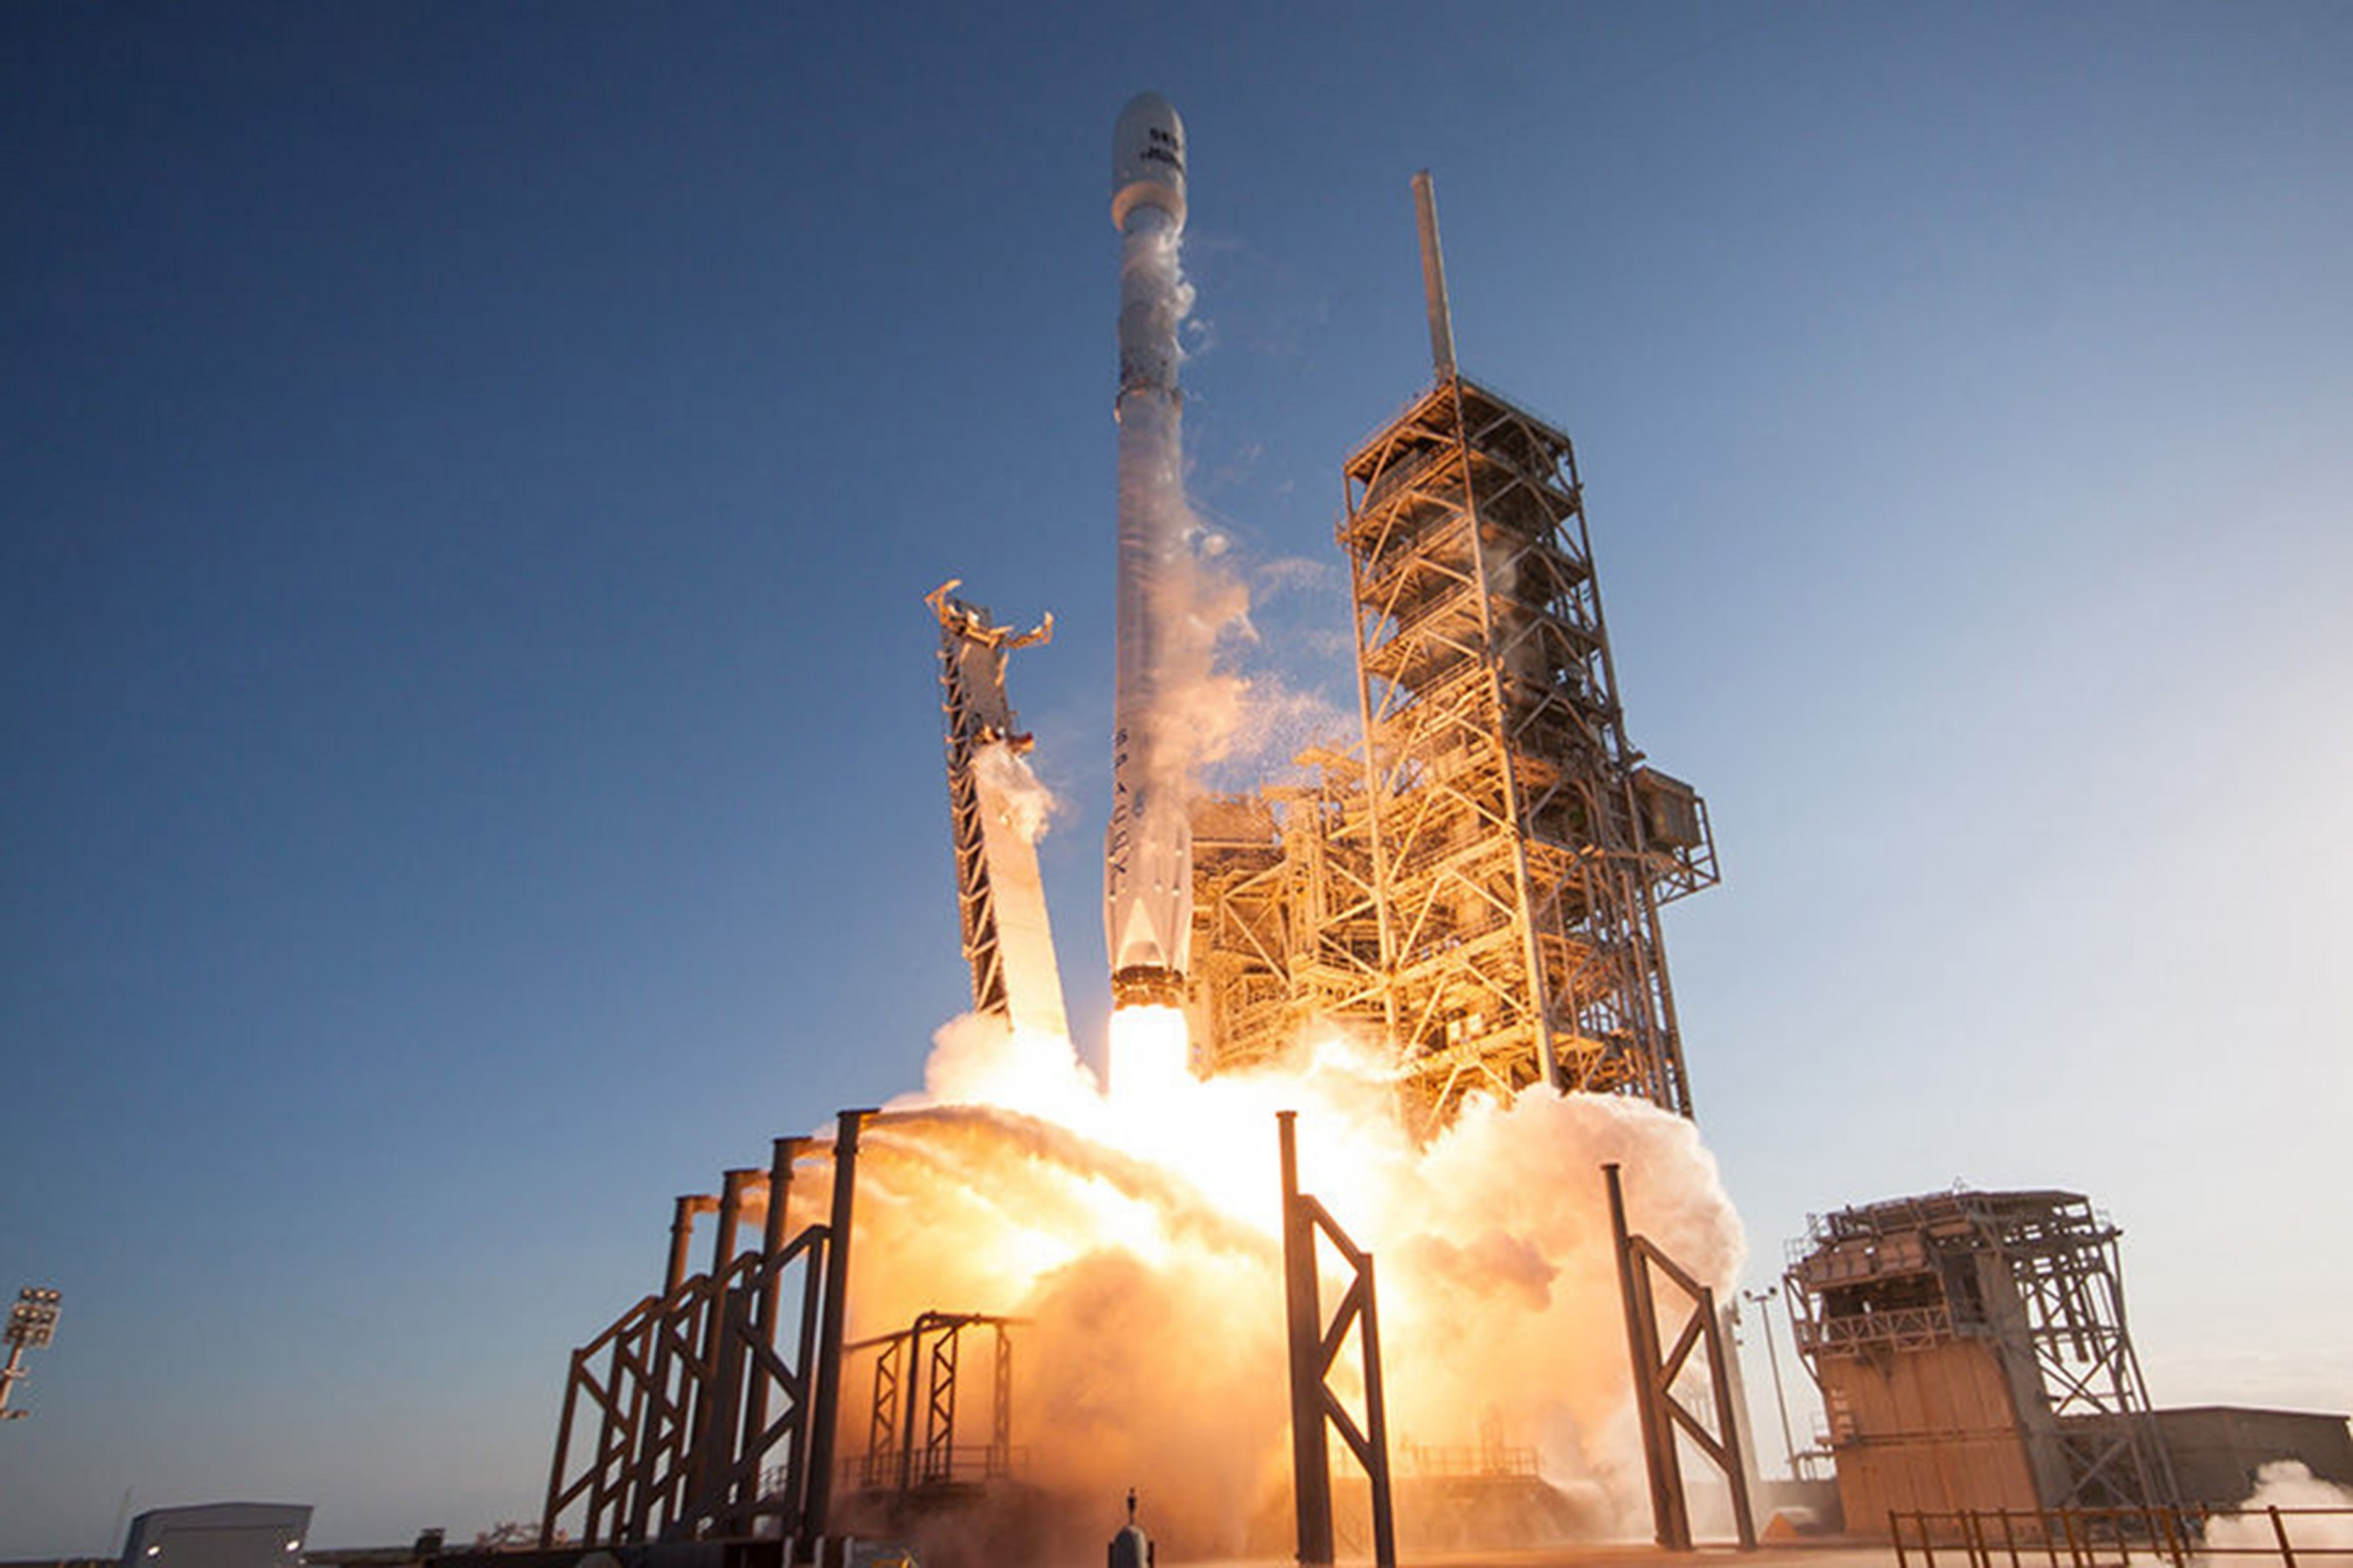 A mass ride-sharing launch will put cremated remains, satellites, and art into space